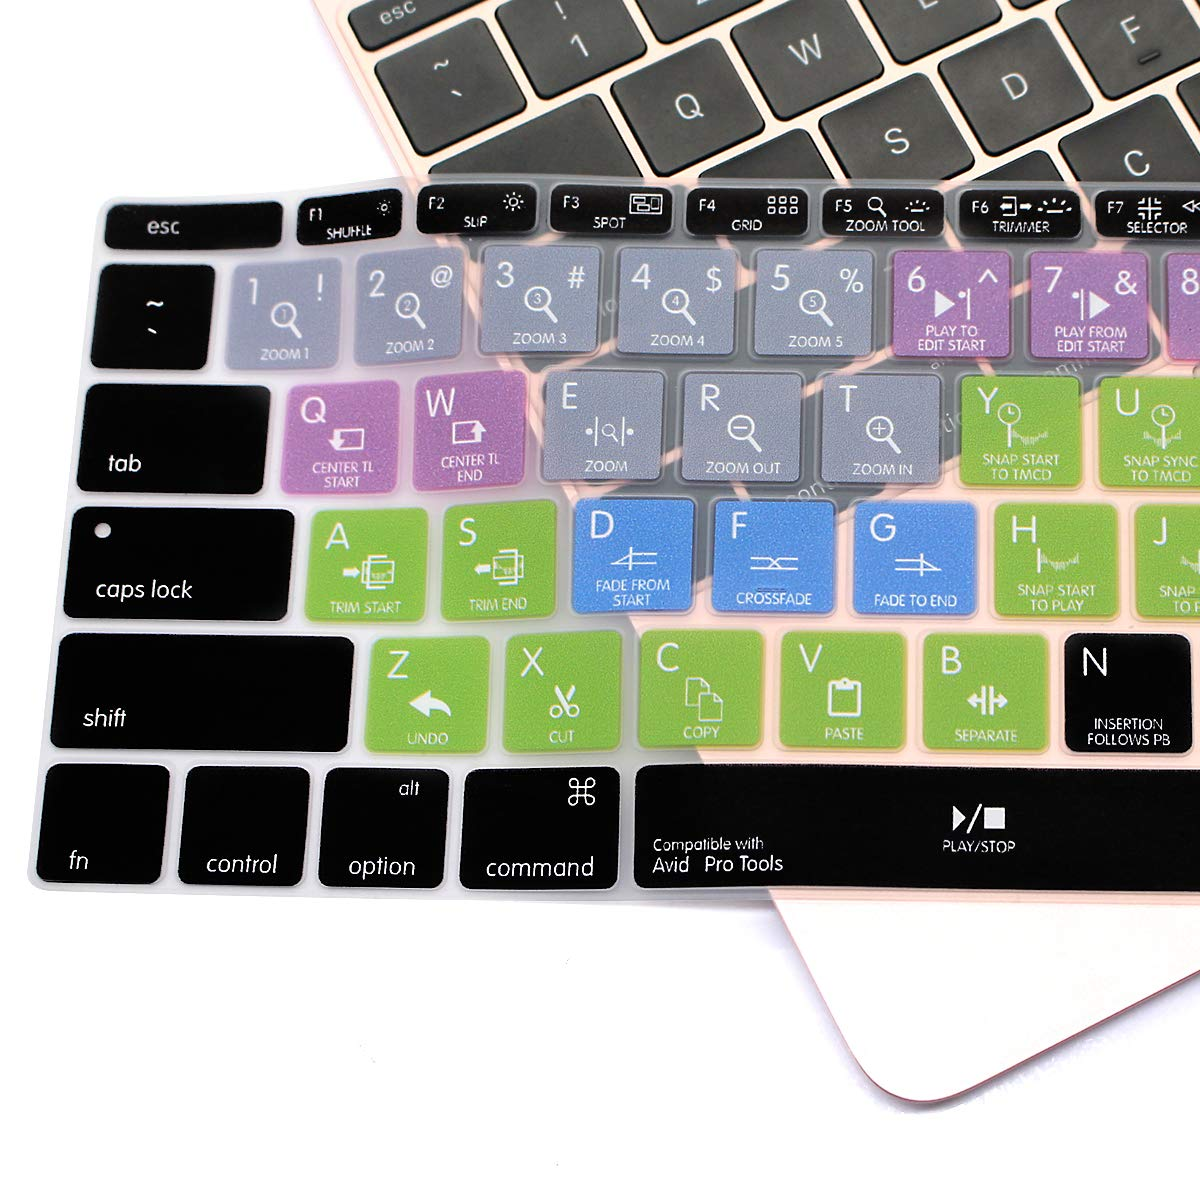 USA Layout /&A1931 HRH Adobe Photoshop PS Hotkey Silicone Keyboard Cover Skin Protective Skin for MacBook New Pro 13 A1708 A1988 No Touch Bar 2018 2017 2016 Release and MacBook 12 A1534 2018 2015